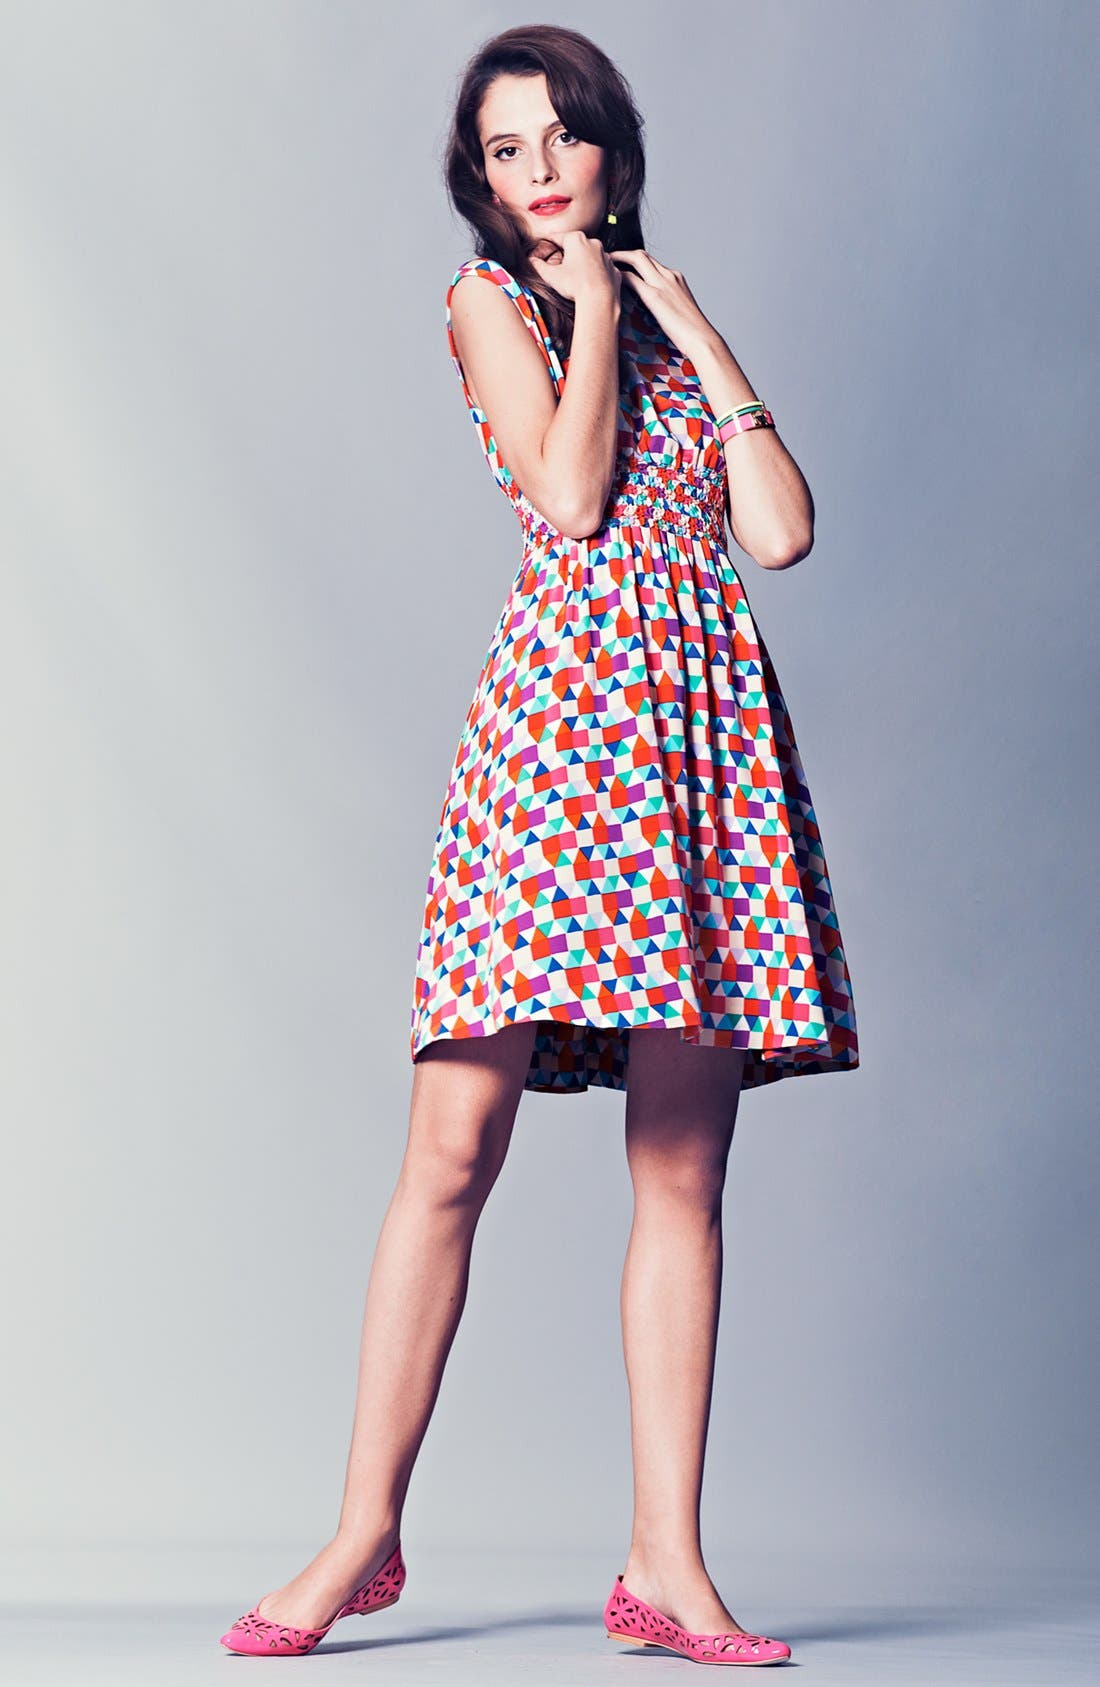 Alternate Image 1 Selected - kate spade new york silk dress & accessories